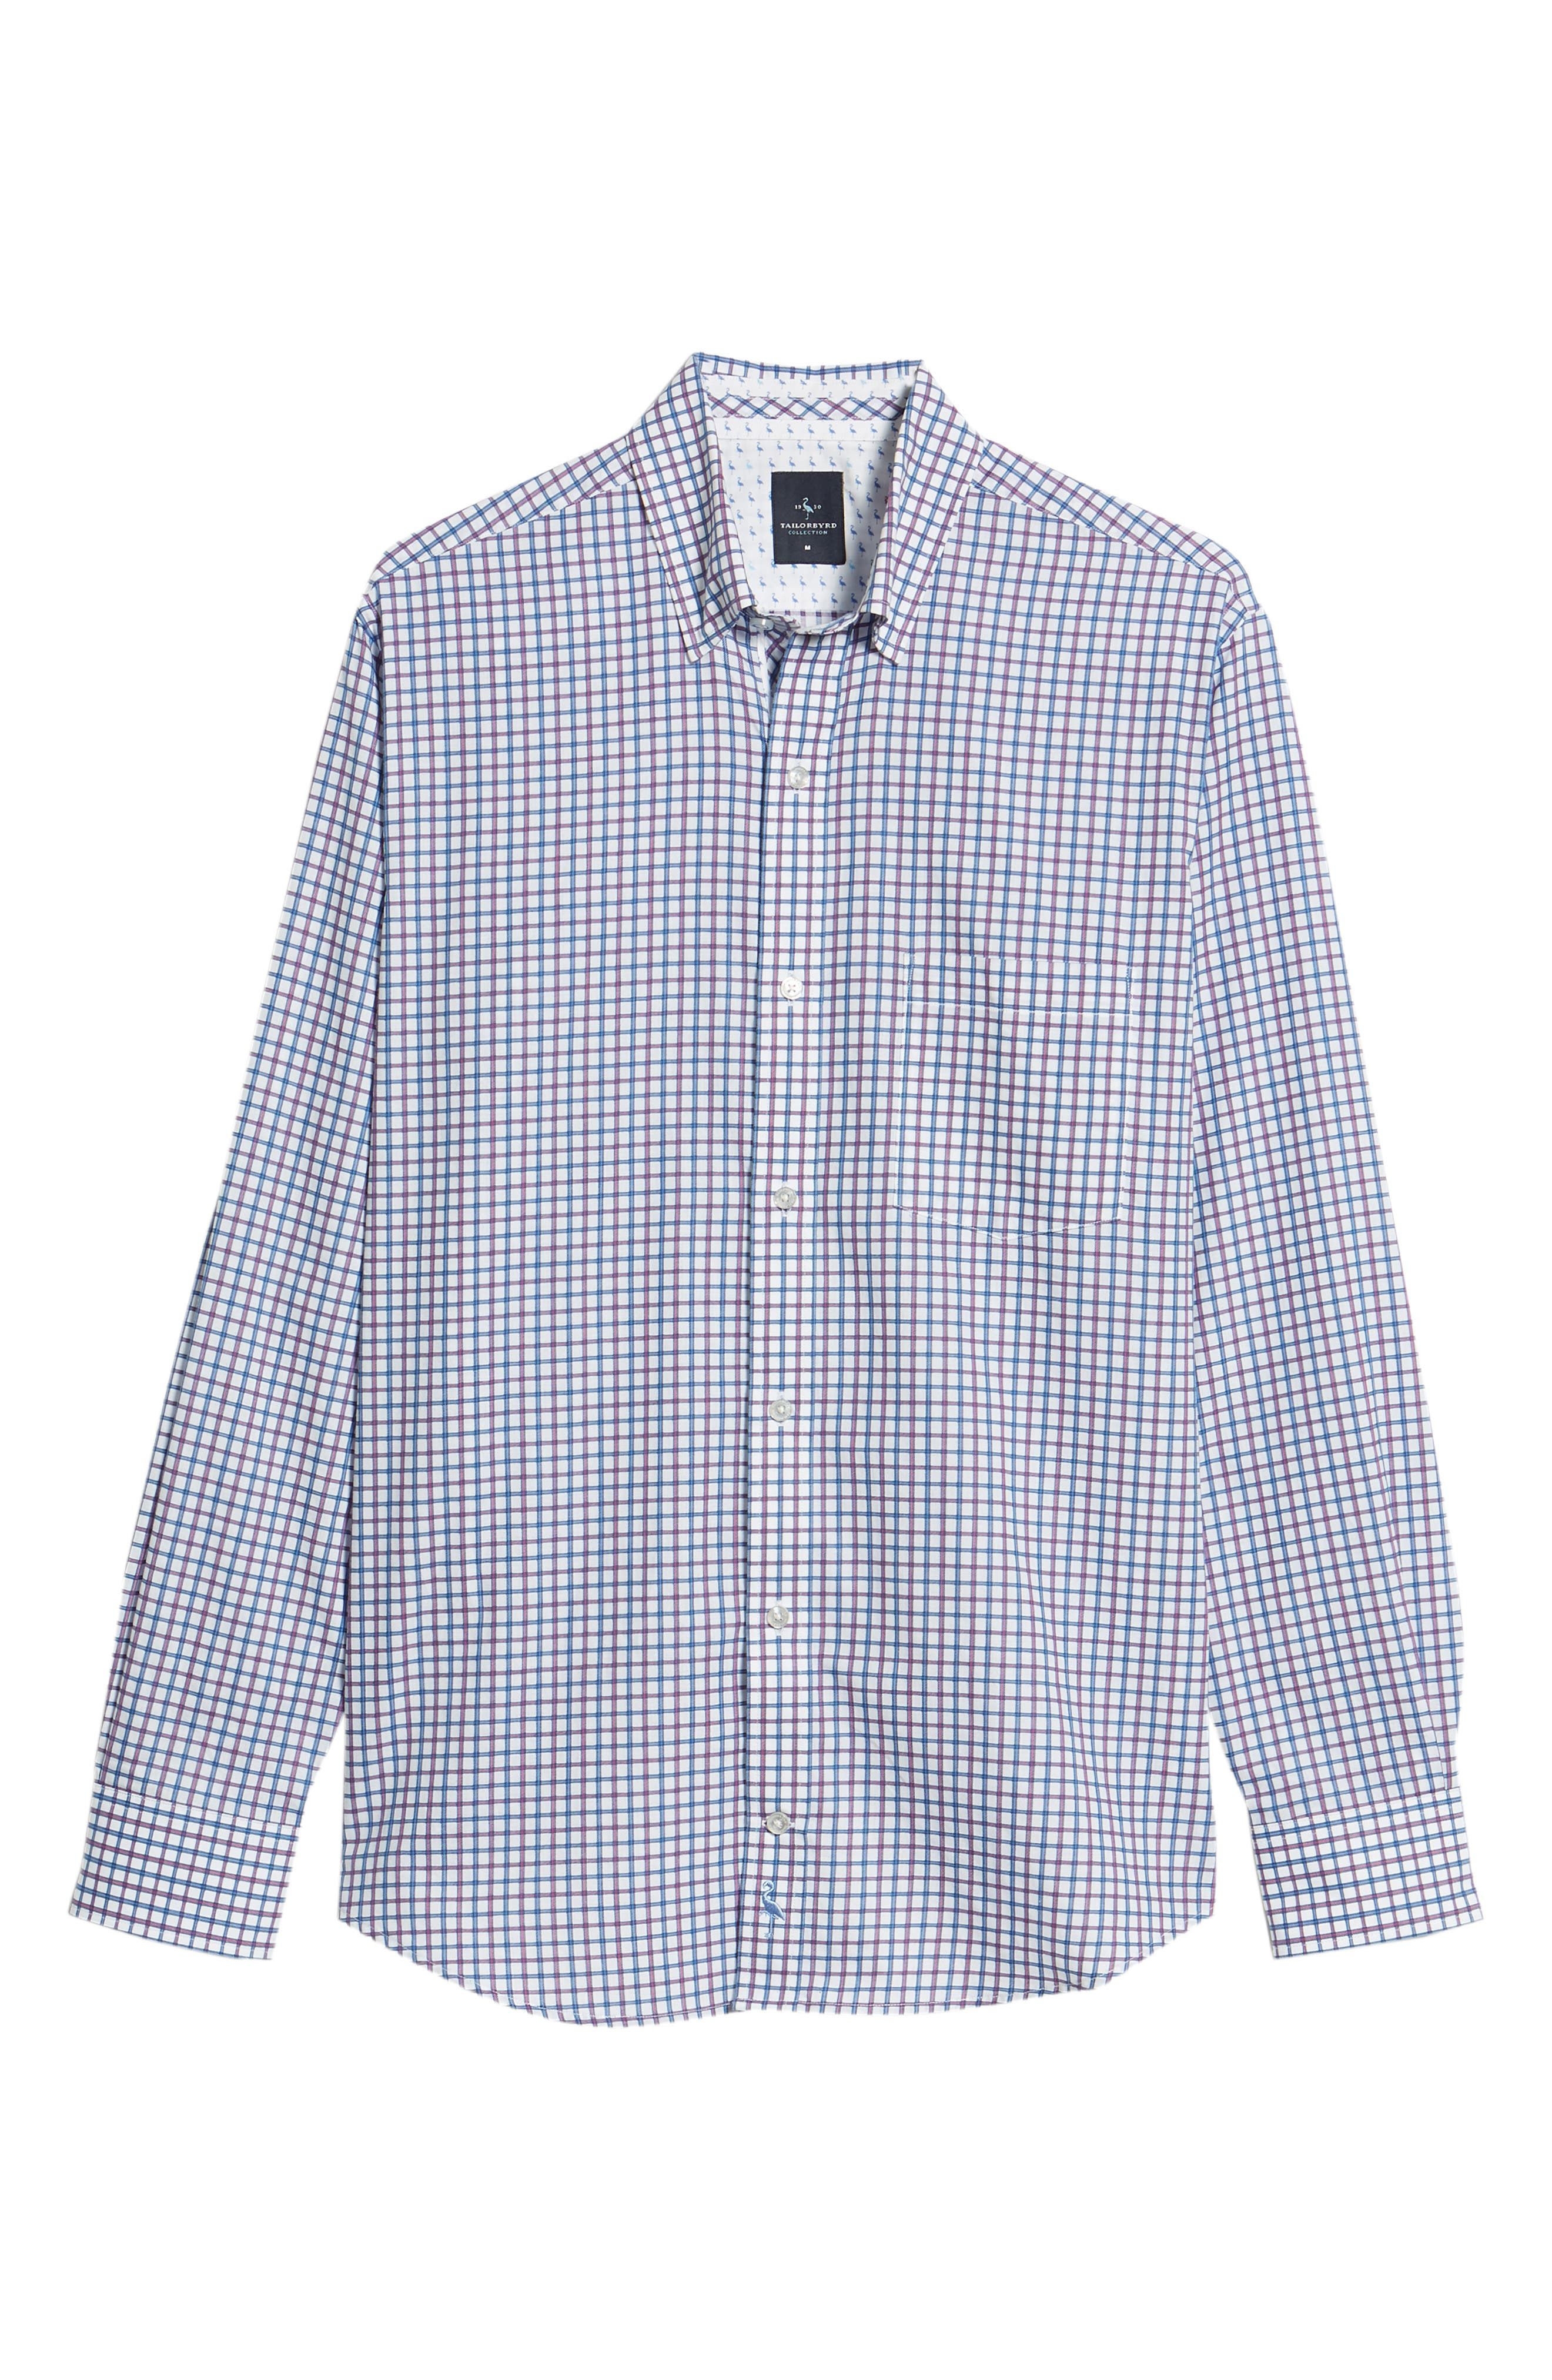 Beck Regular Fit Windowpane Sport Shirt,                             Alternate thumbnail 6, color,                             Blue